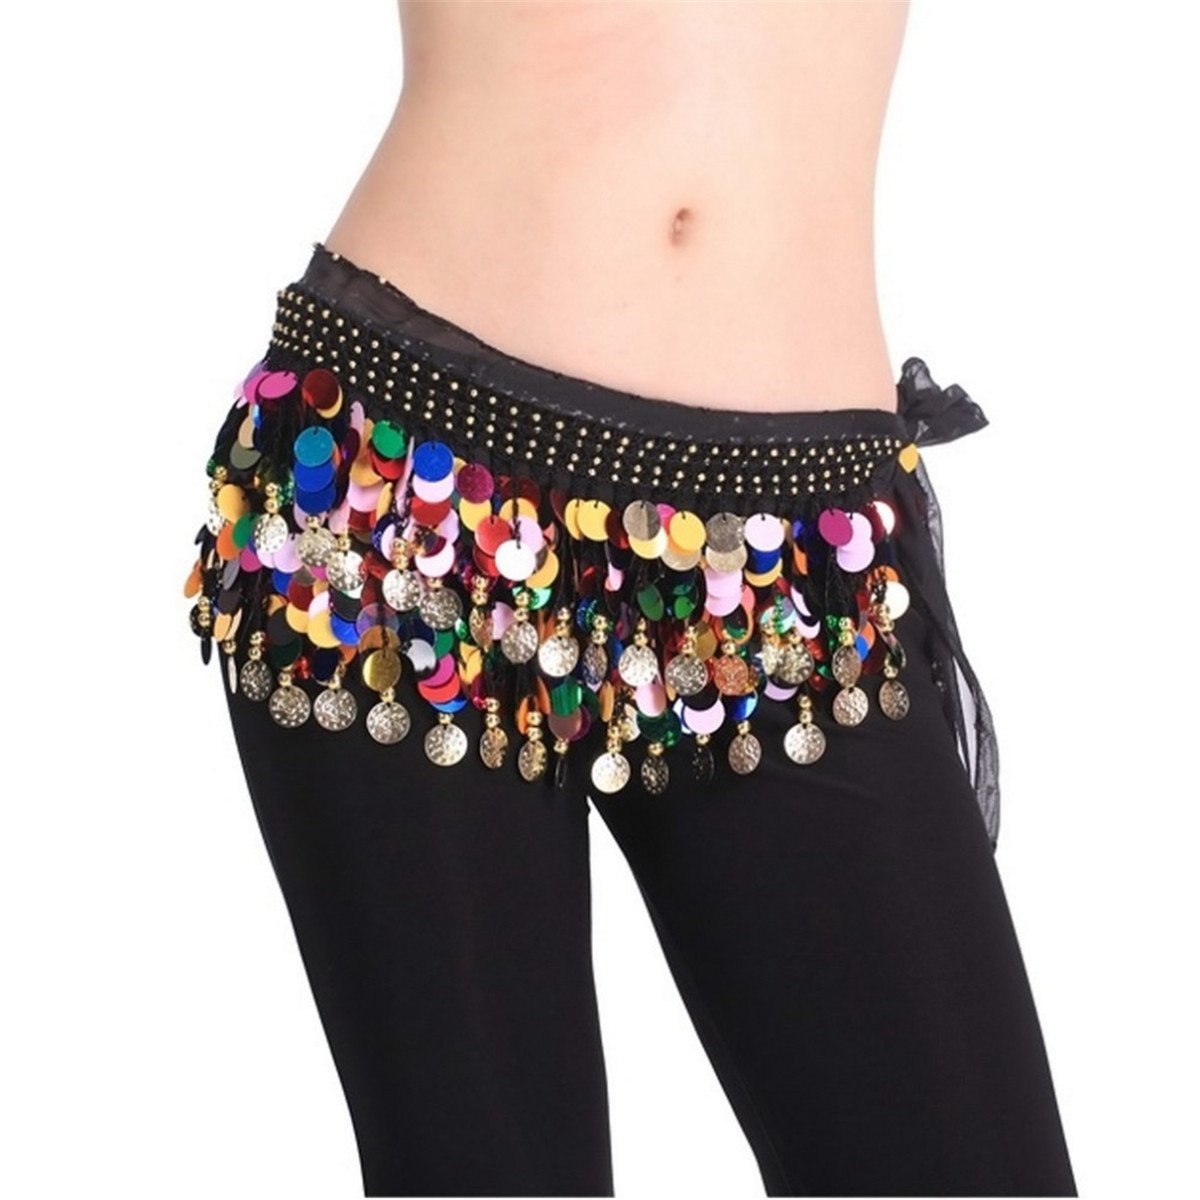 Belly Dancing Dance Waistband Hip Skirt Scarf With Multicolor Sequins 12007